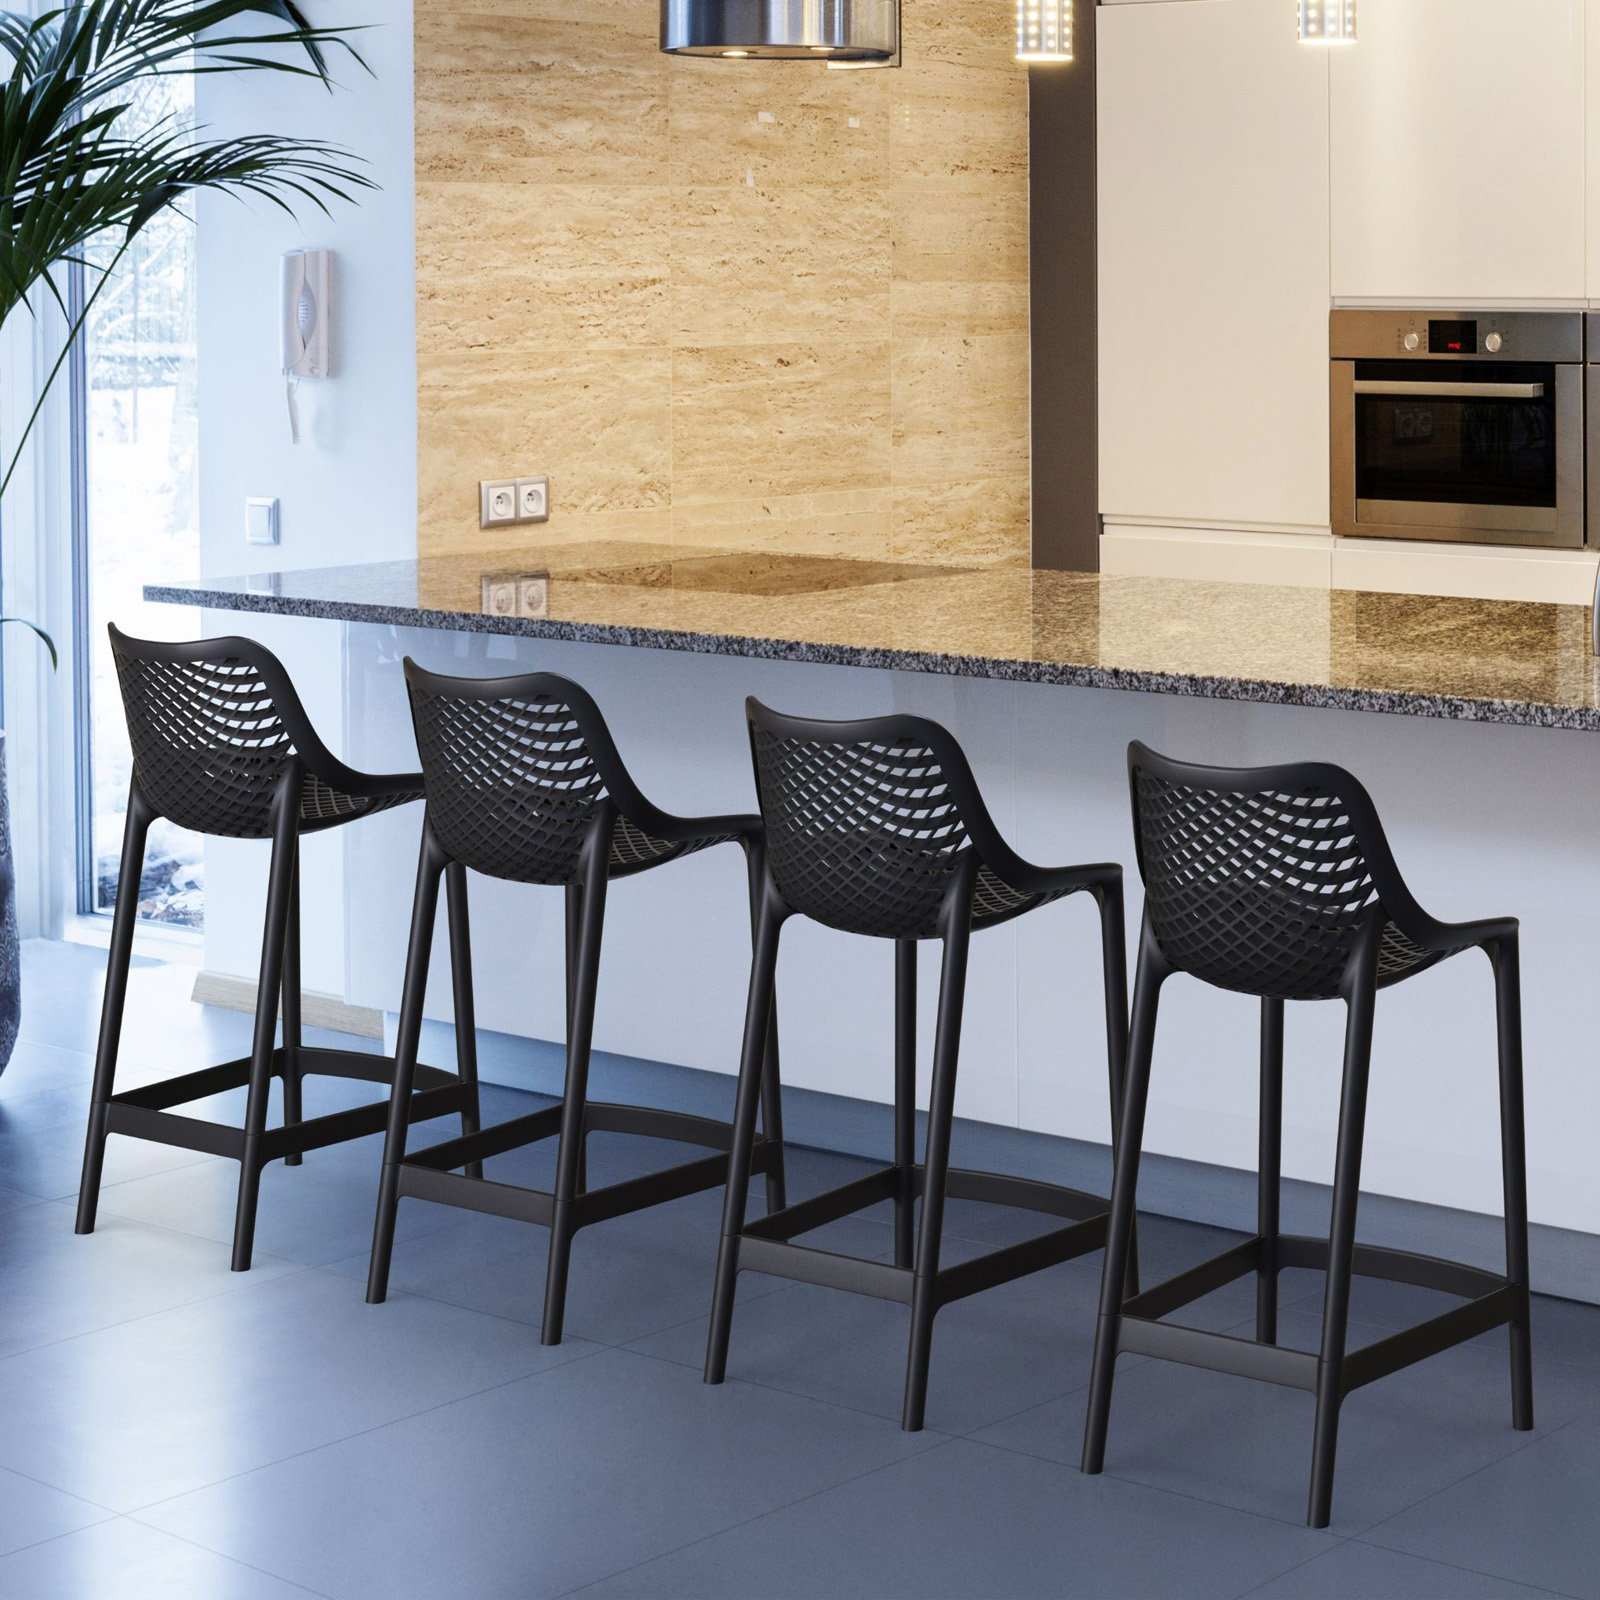 Compamia Air 25.6 in. Counter Height Bar Stool Set of 2 by Compamia